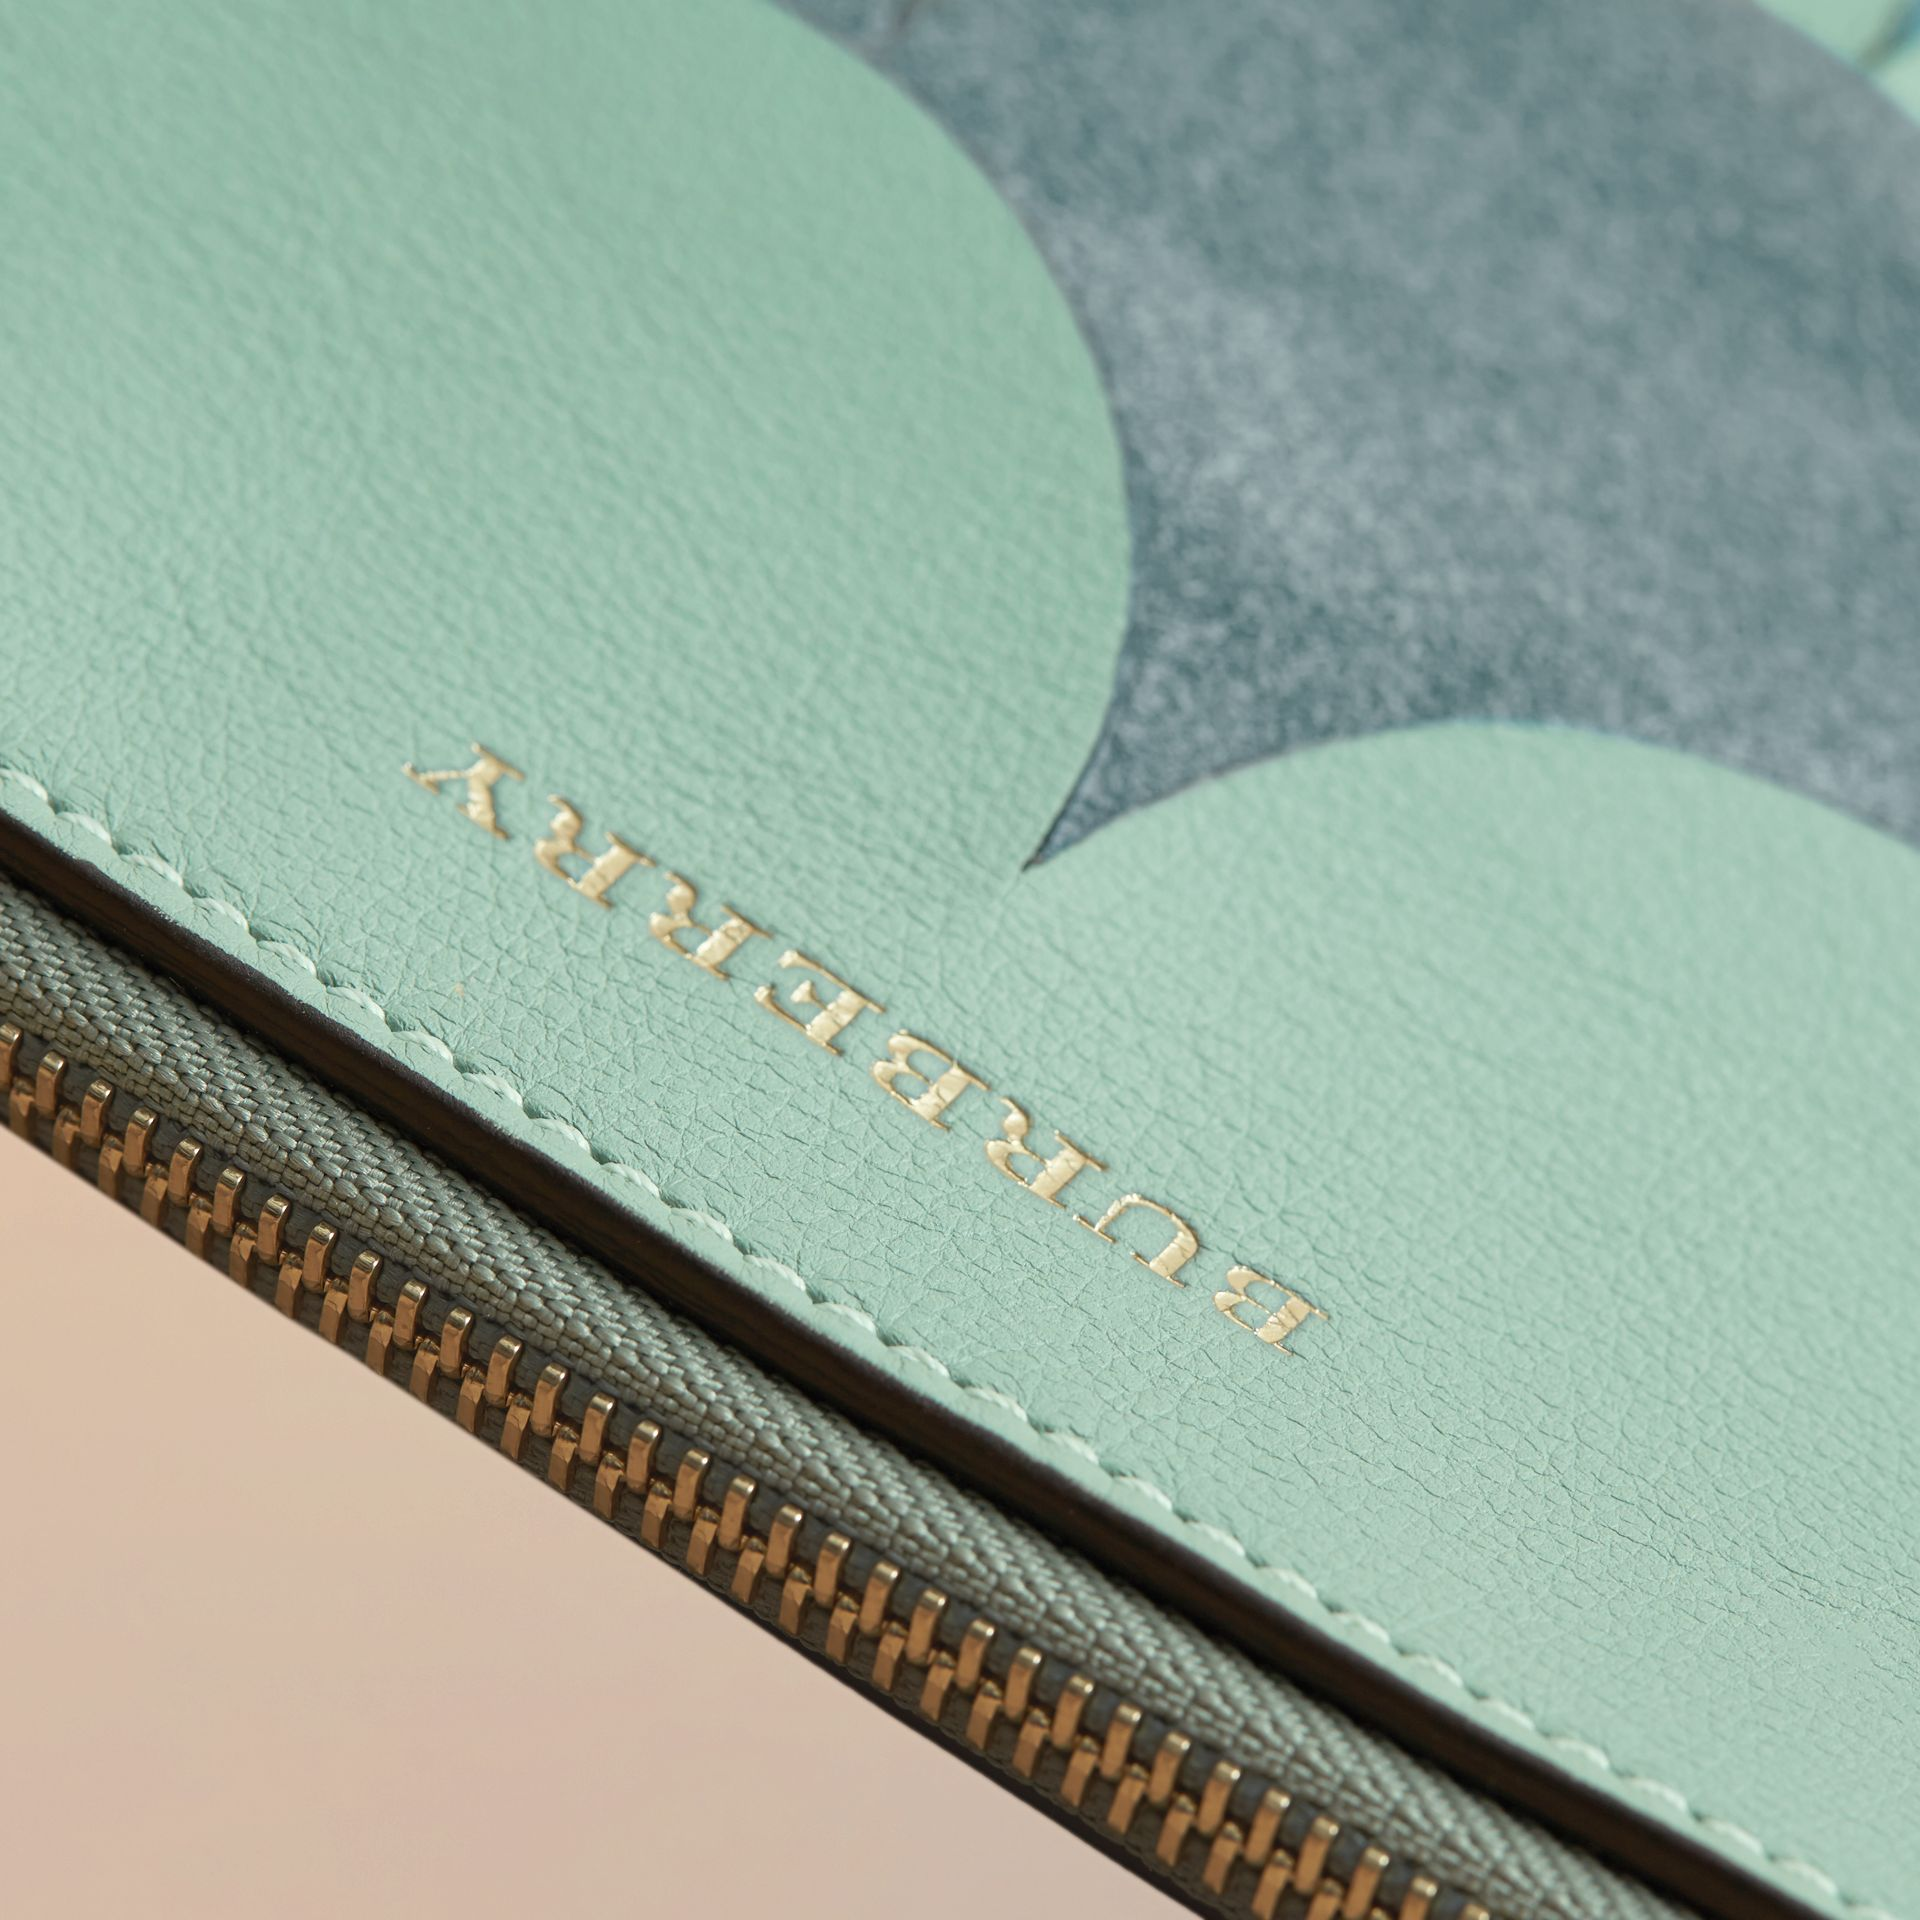 Two-tone Scalloped Leather and Suede Clutch Bag in Celadon Green - Women | Burberry Australia - gallery image 7